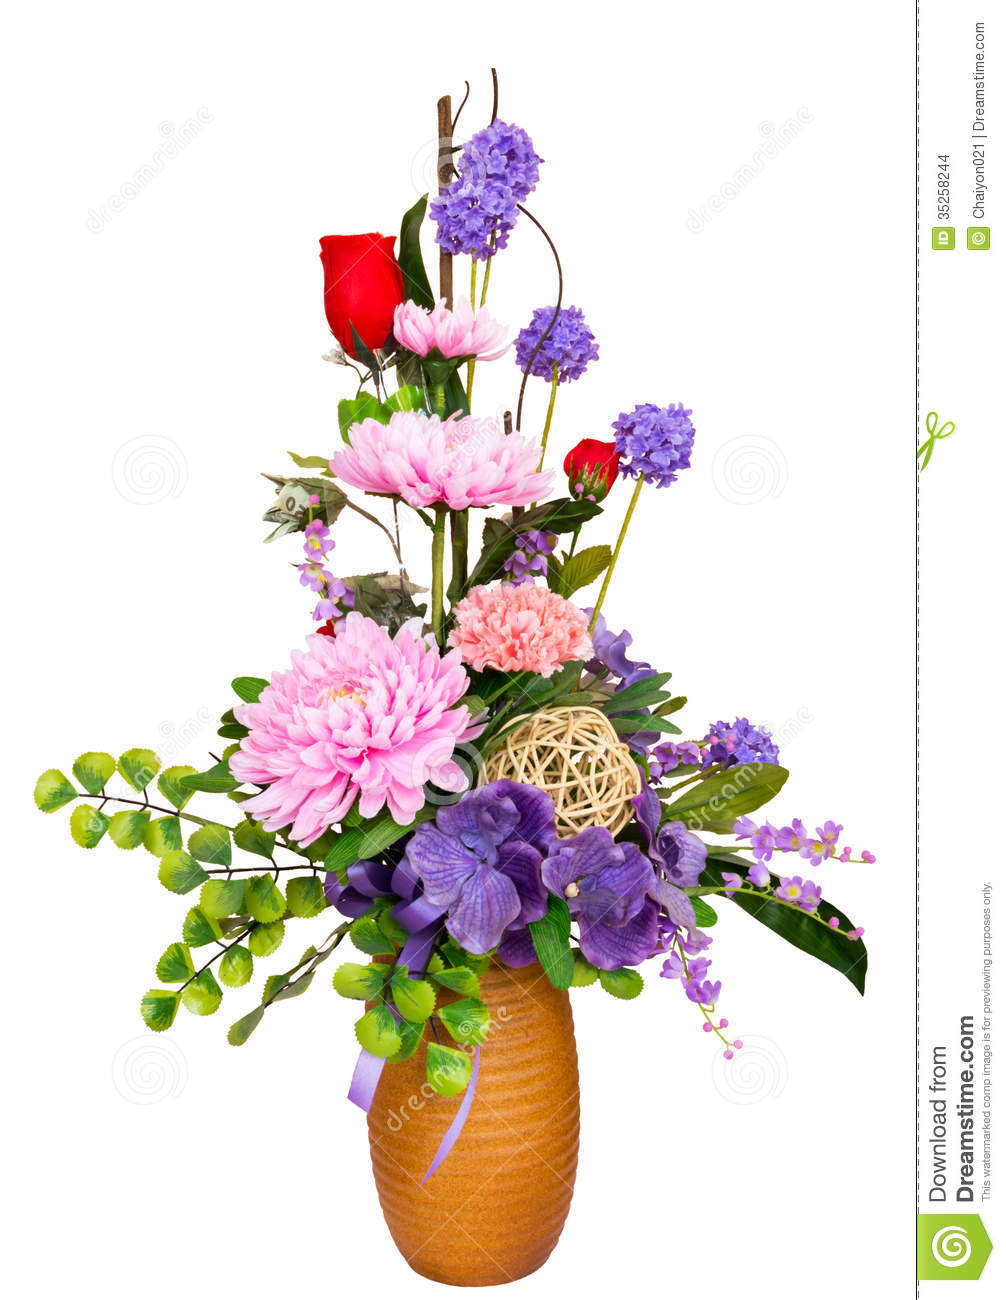 Decorative artificial flowers stock images image 35258244 for Artificial flower for decoration